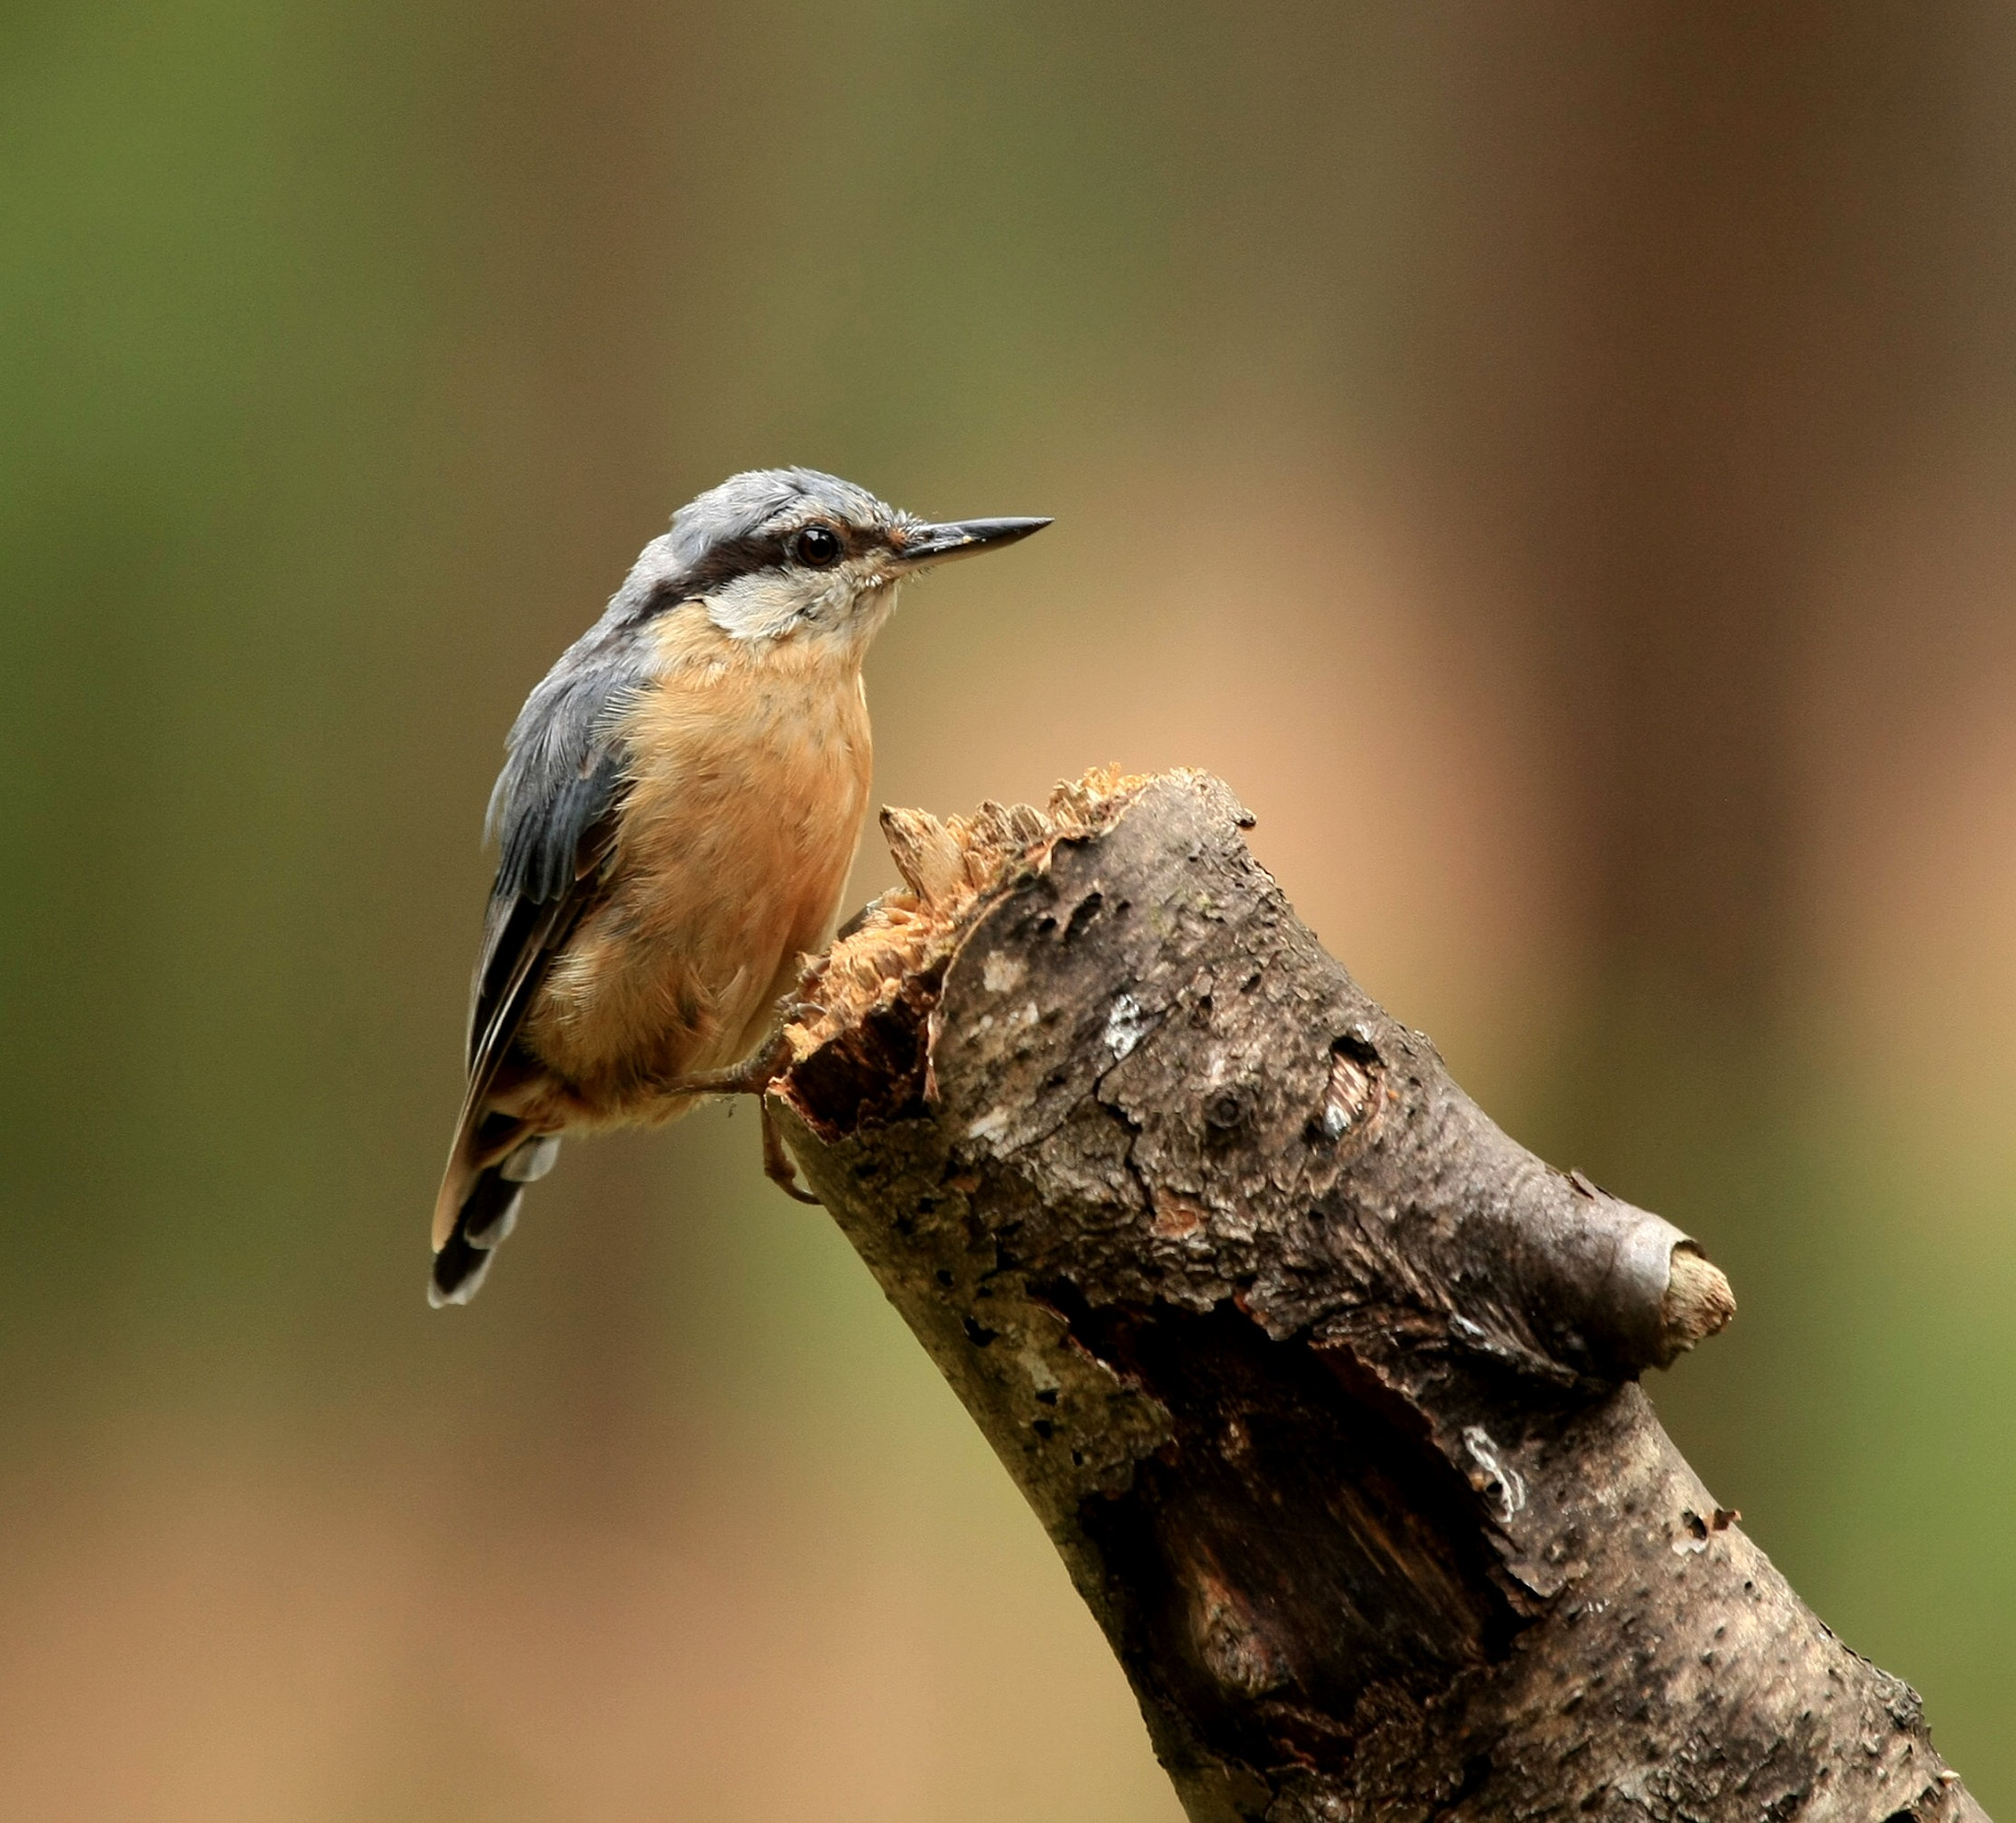 Nuthatch/Boomklever by Bob66